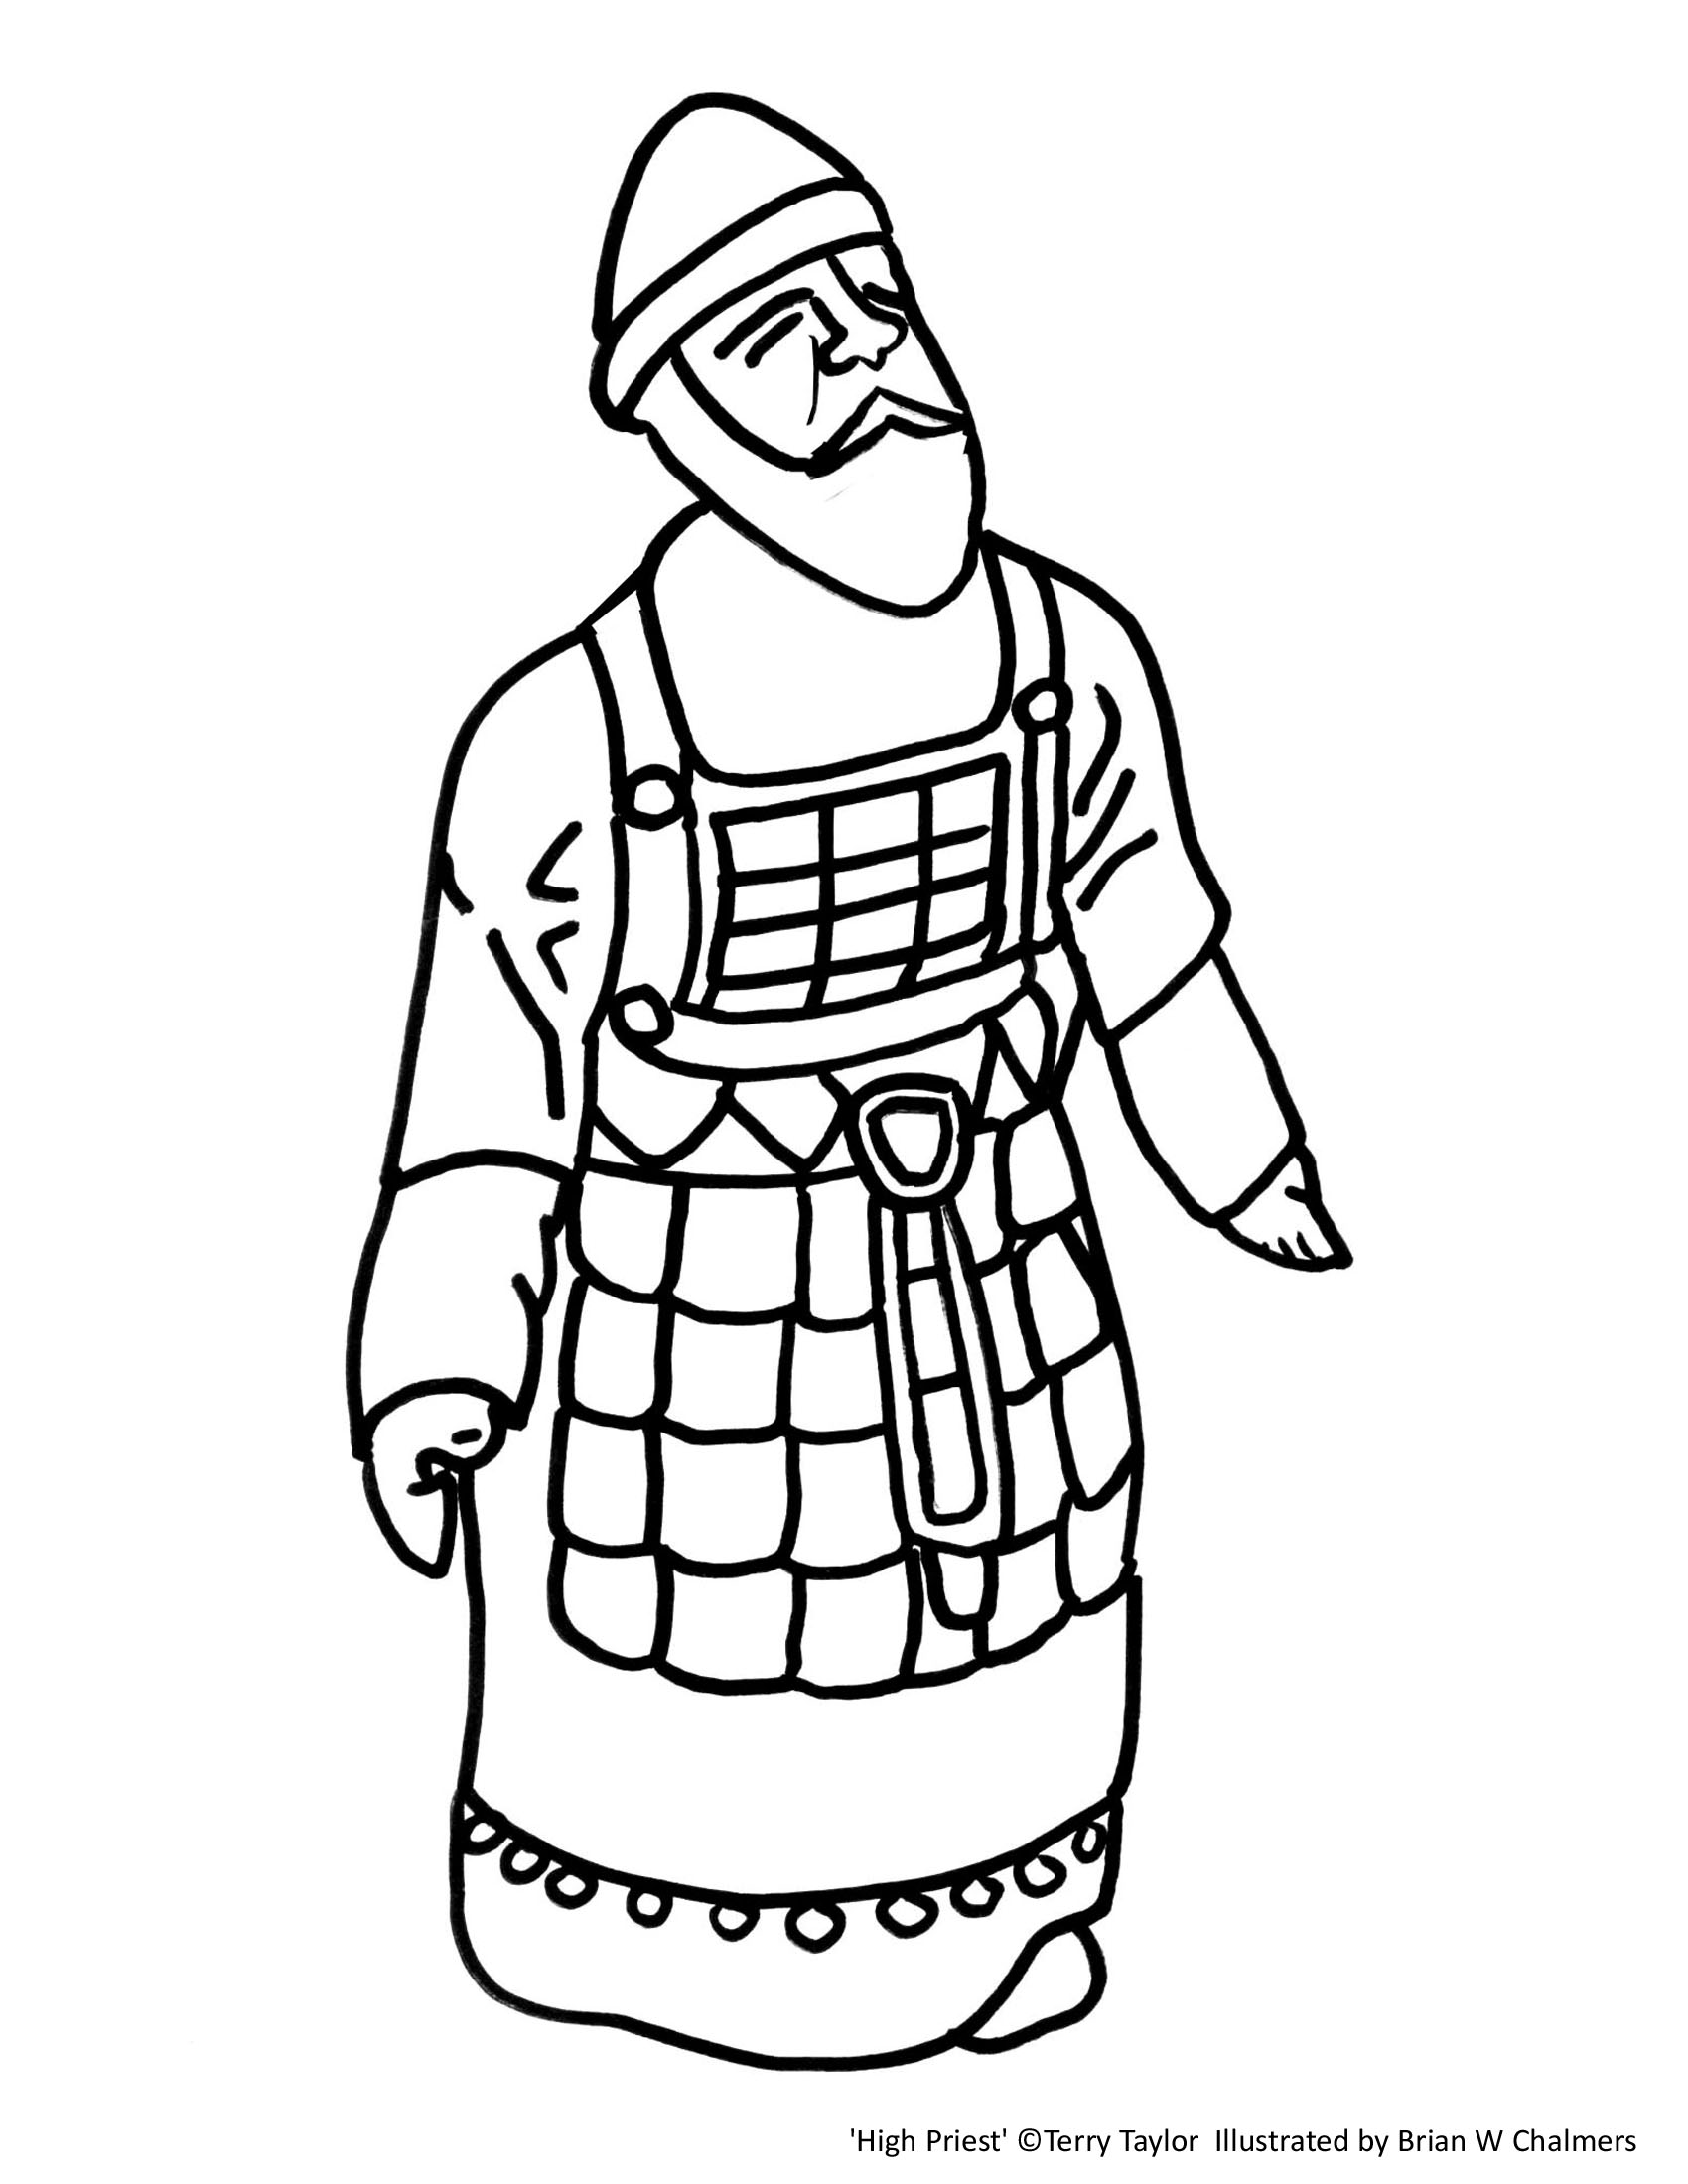 high priest coloring page from 3dtabernaclecom